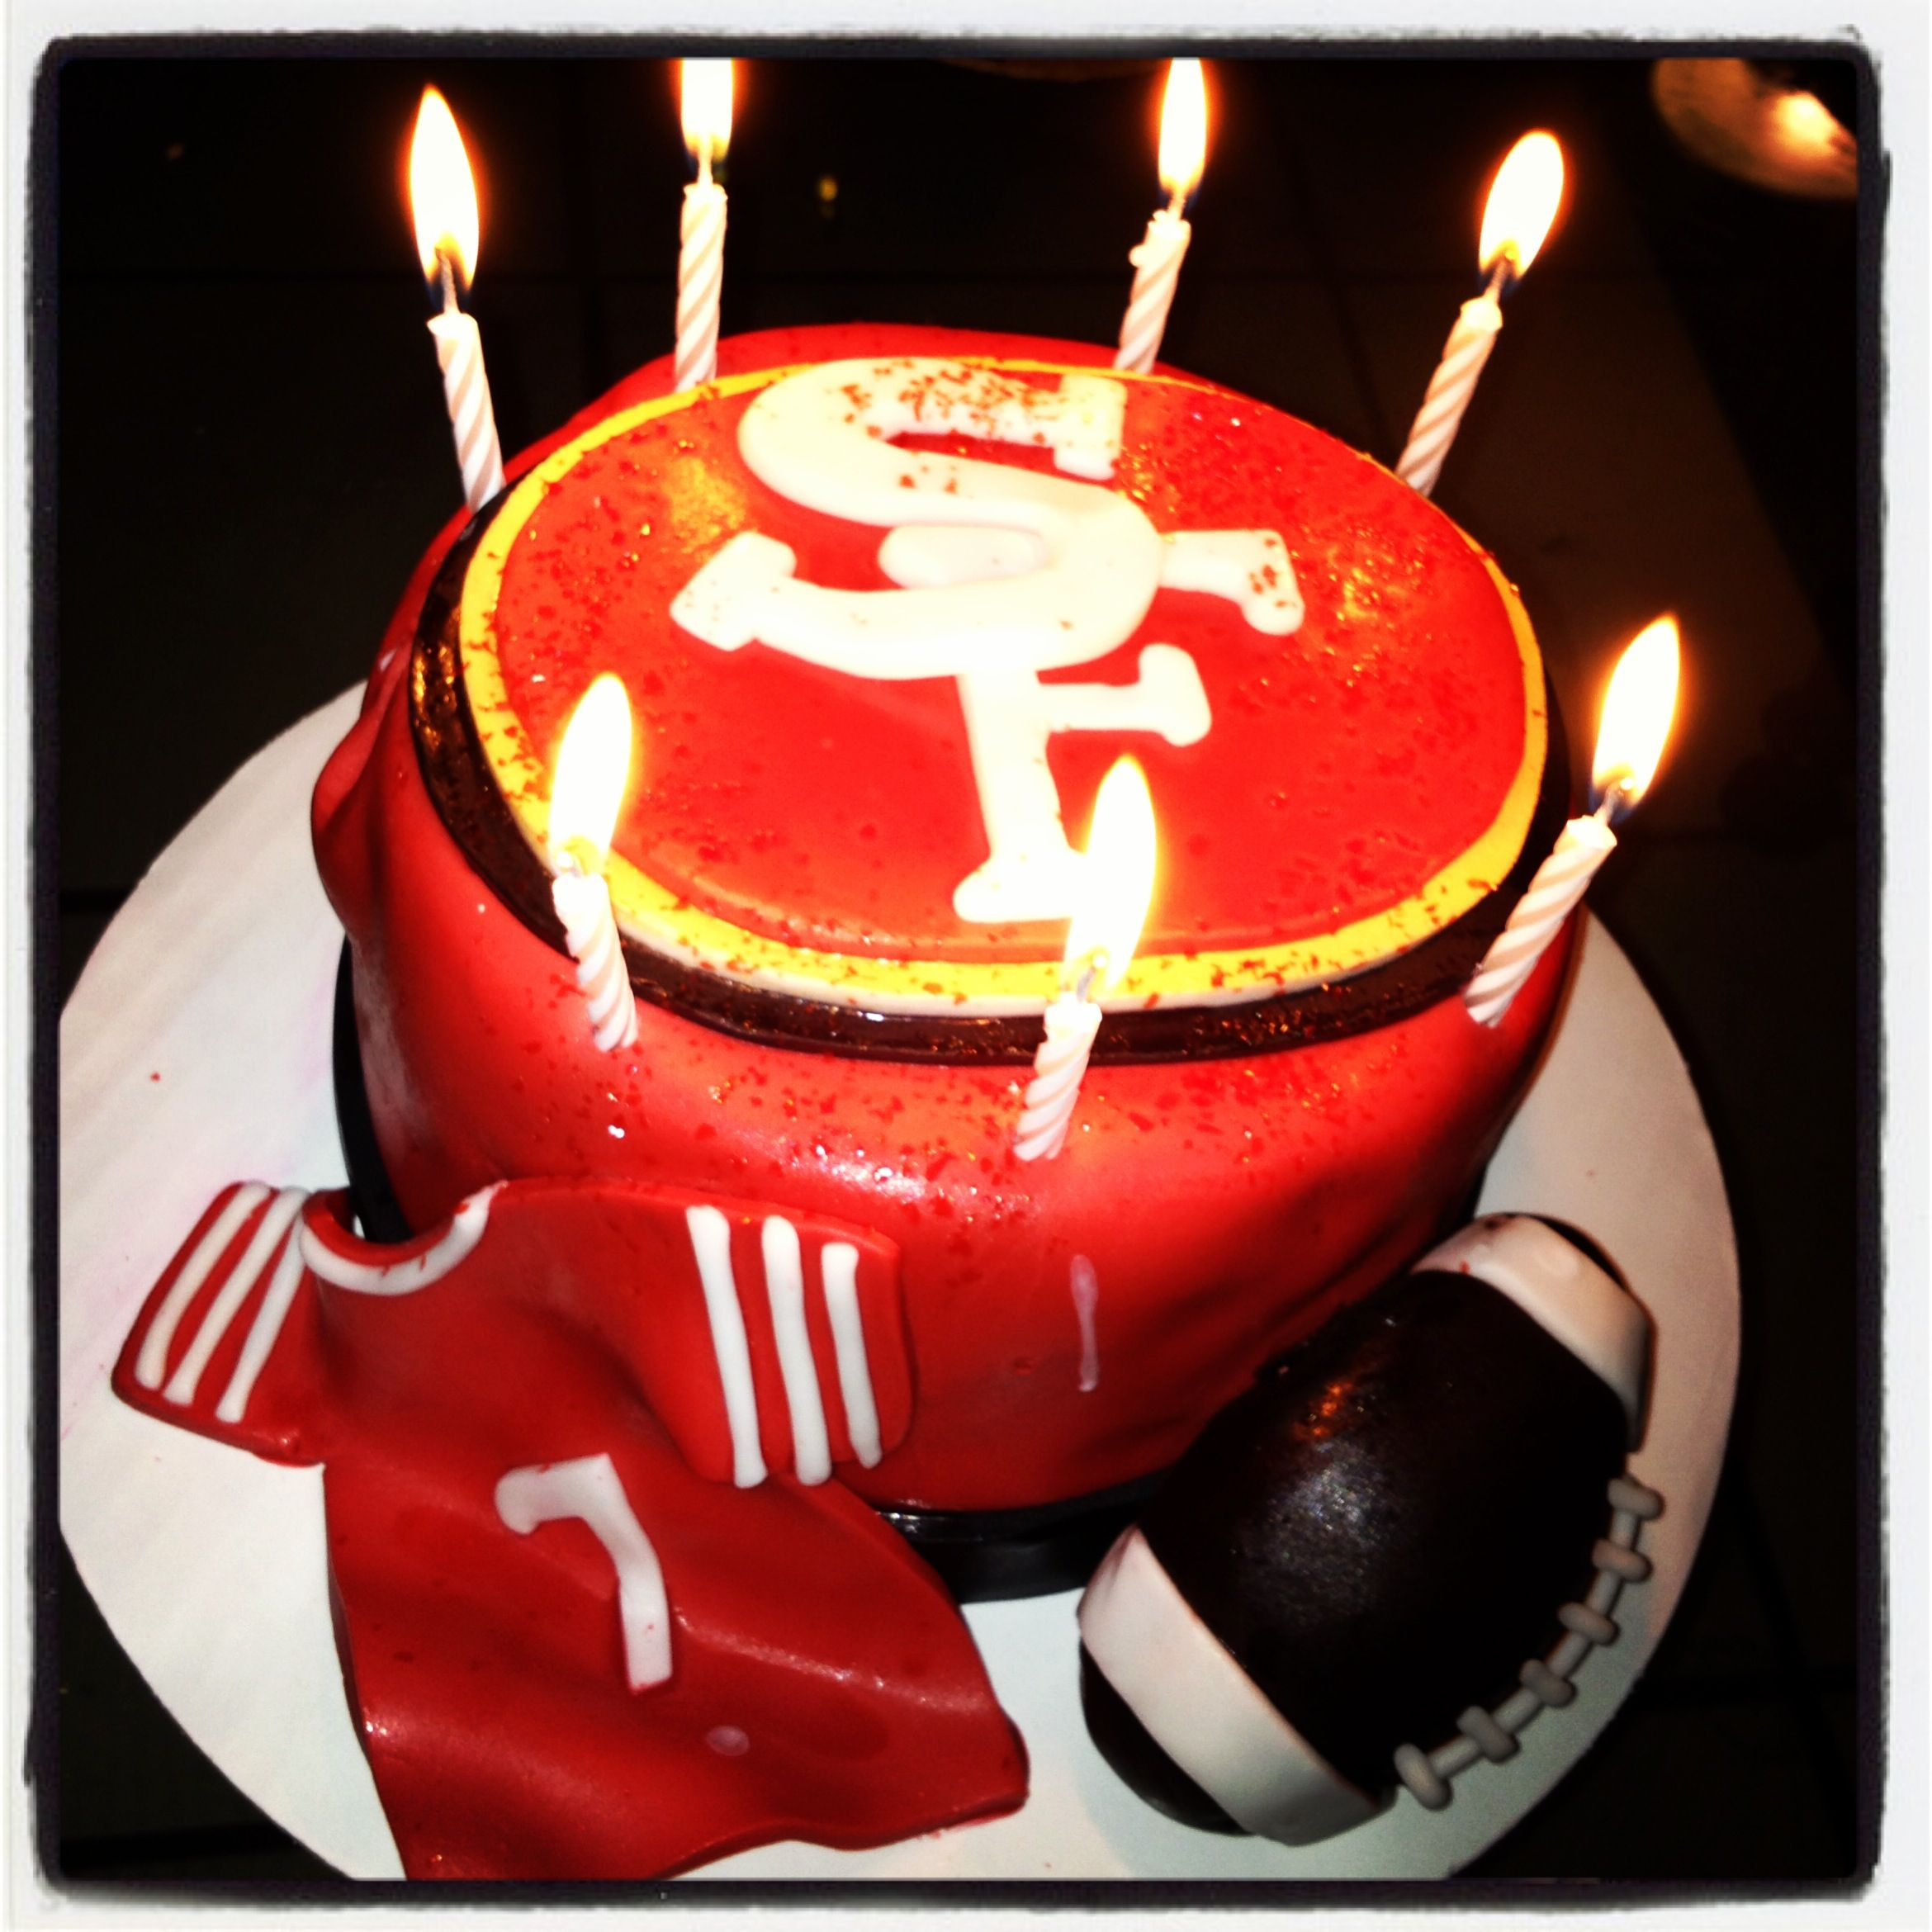 49ers cake with images 49ers cake cake birthday candles